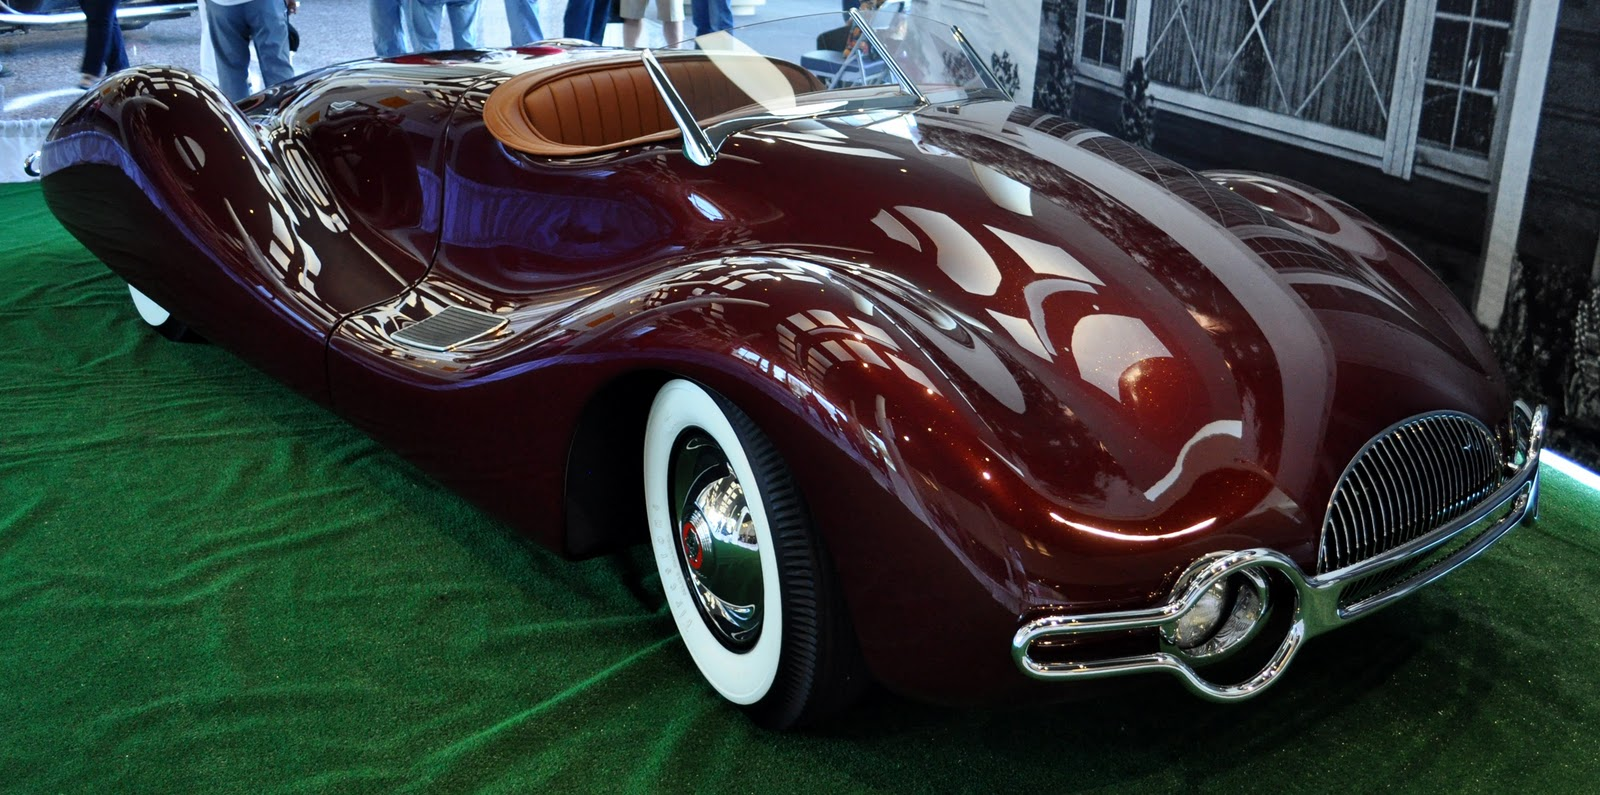 Car Specials: Just A Car Guy: The 1948 Norman Timbs Special